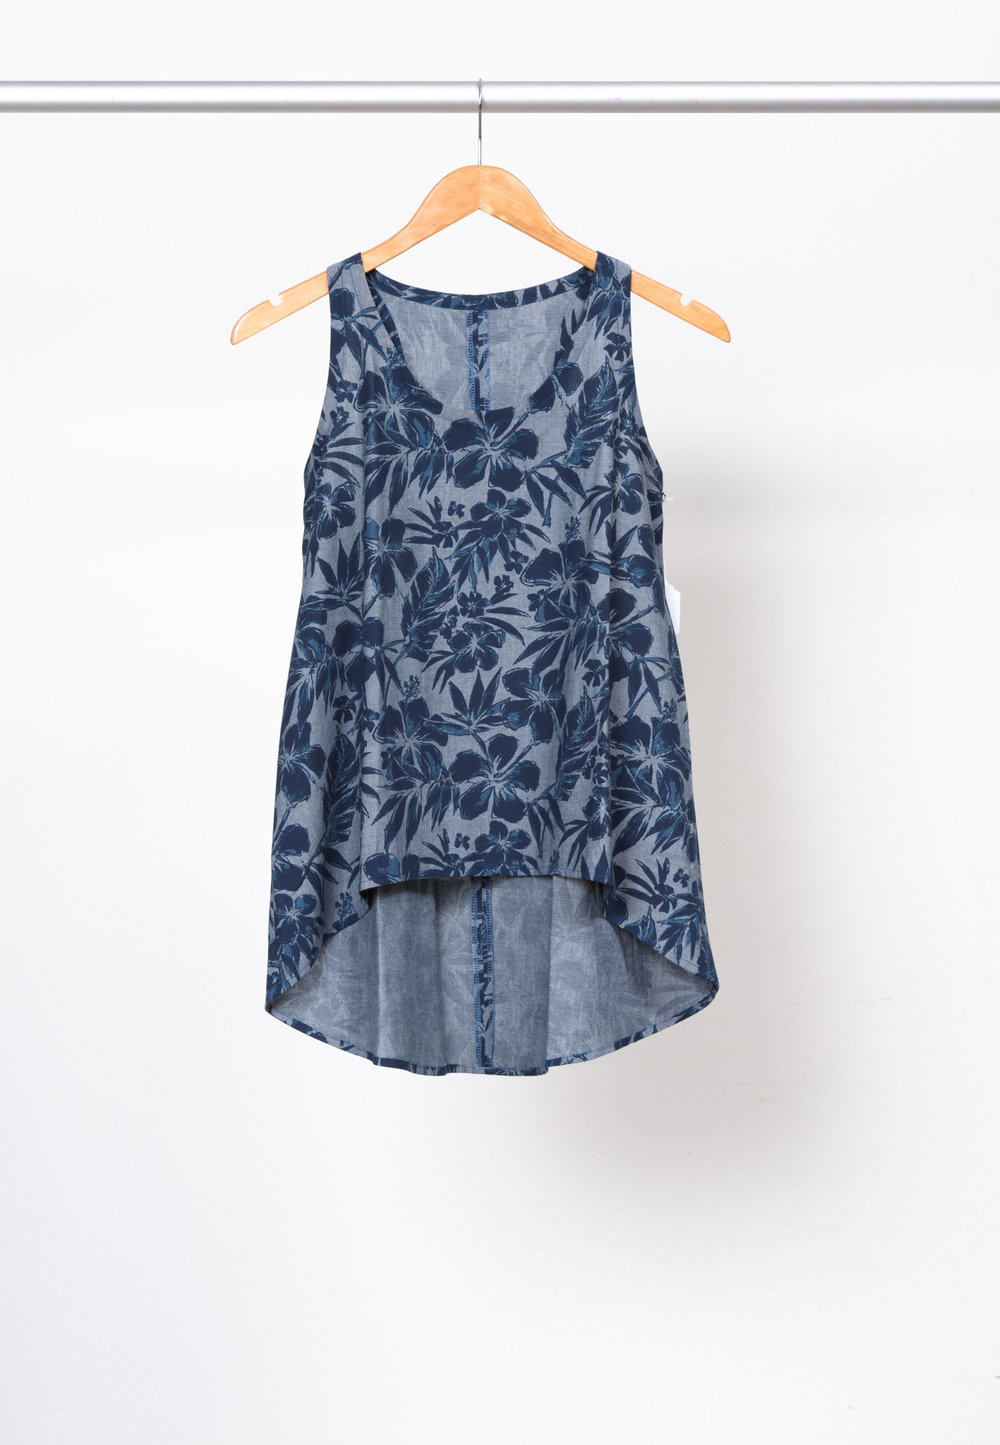 FOXGLOVE TANK   BY     BASTE AND GATHER ,  CHAMBRAY BLVD. PRINTS